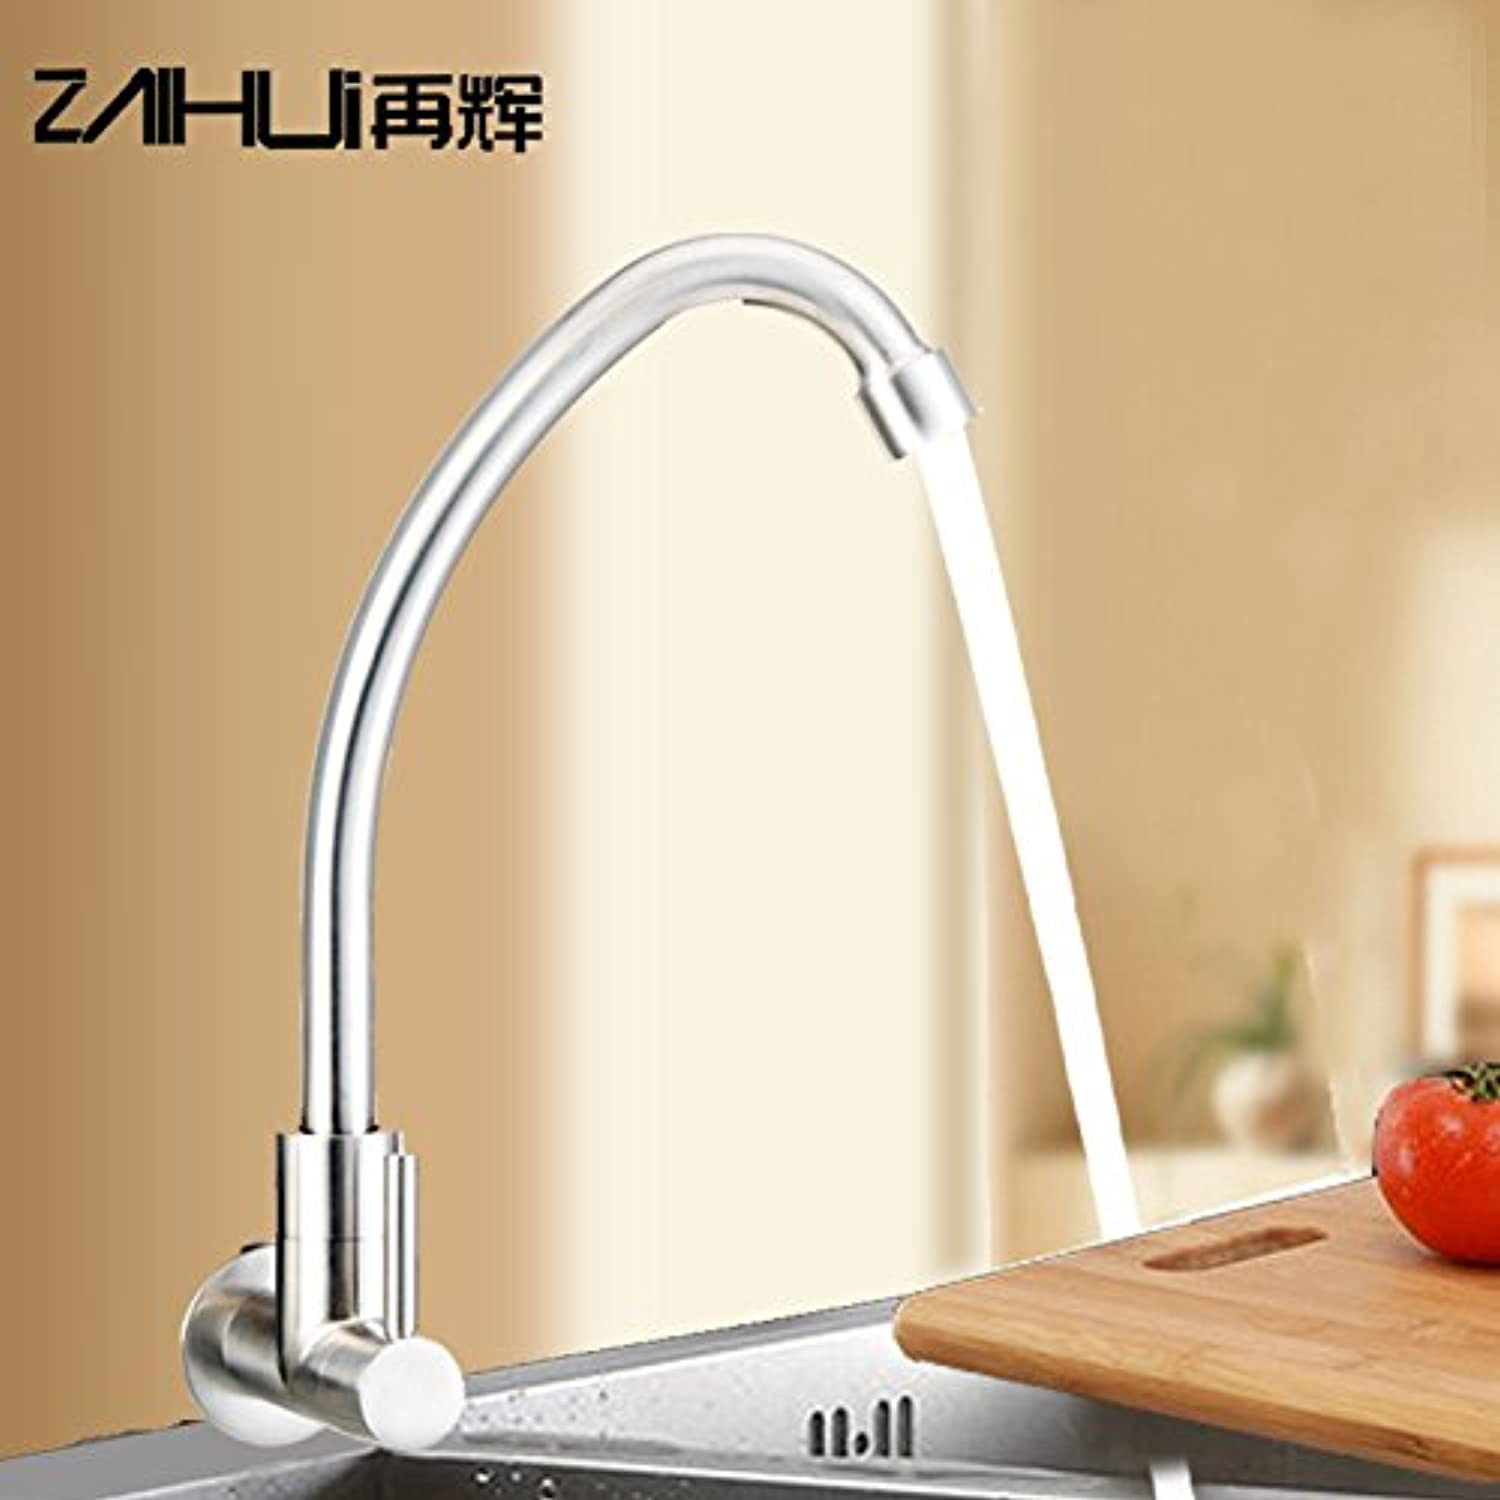 Commercial Single Lever Pull Down Kitchen Sink Faucet Brass ConstructedSingle Cold Faucet Full 304 Stainless Steel Faucet Kitchen Sink Single Cold Faucet Factory Direct into The Wall,Regular